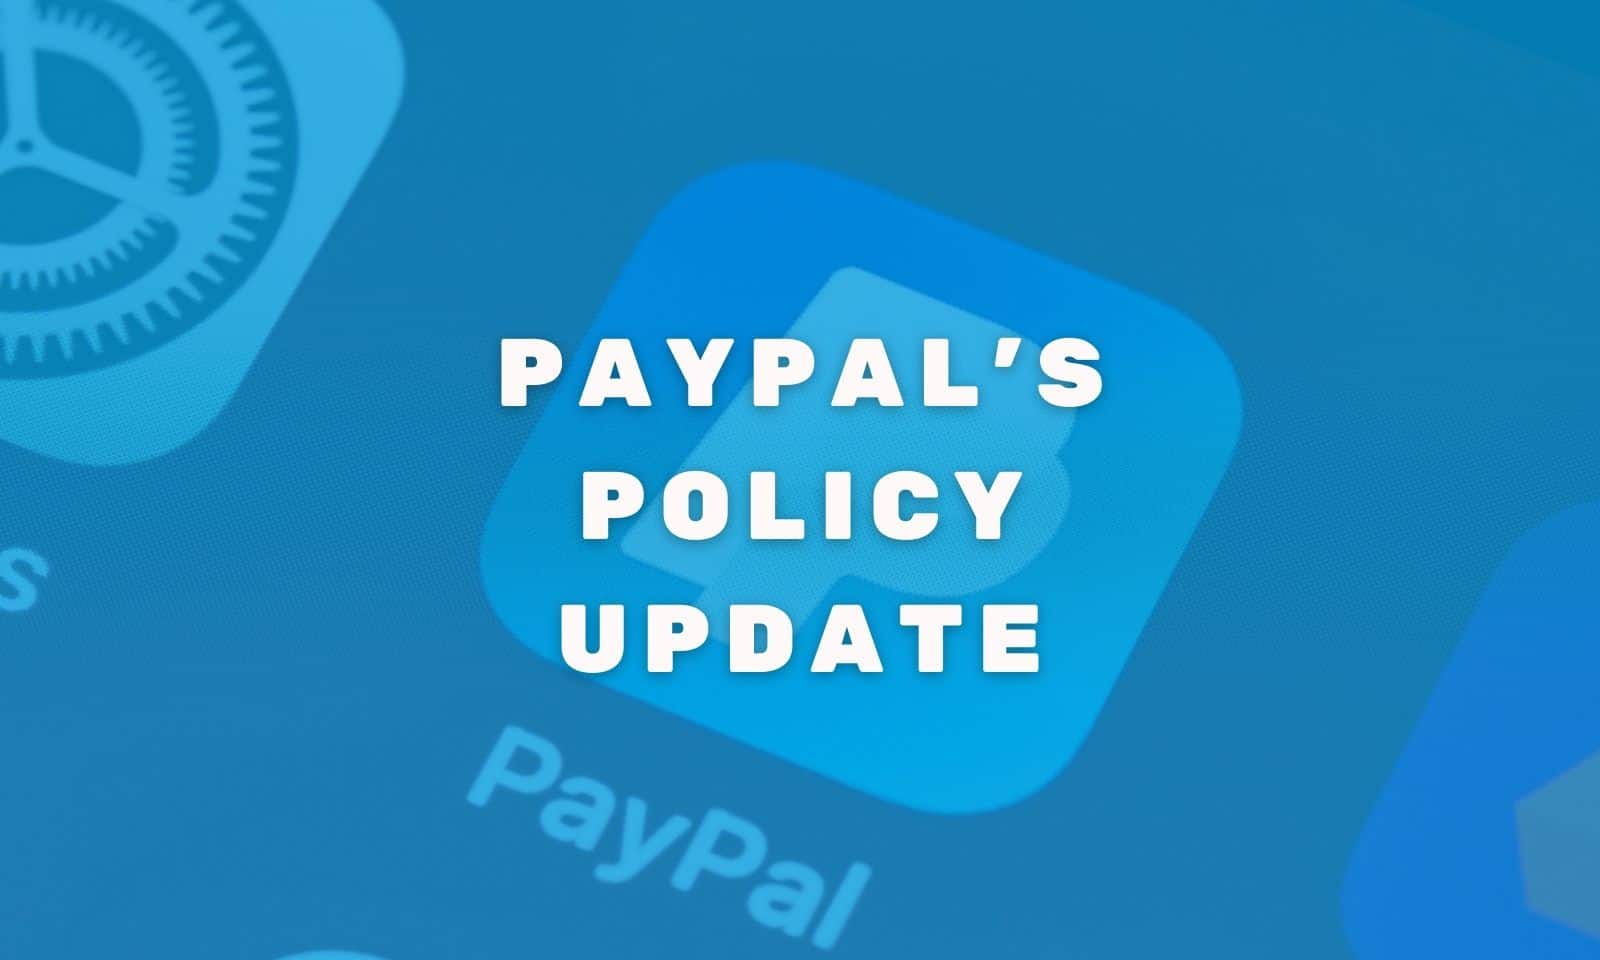 paypal policy update cover image